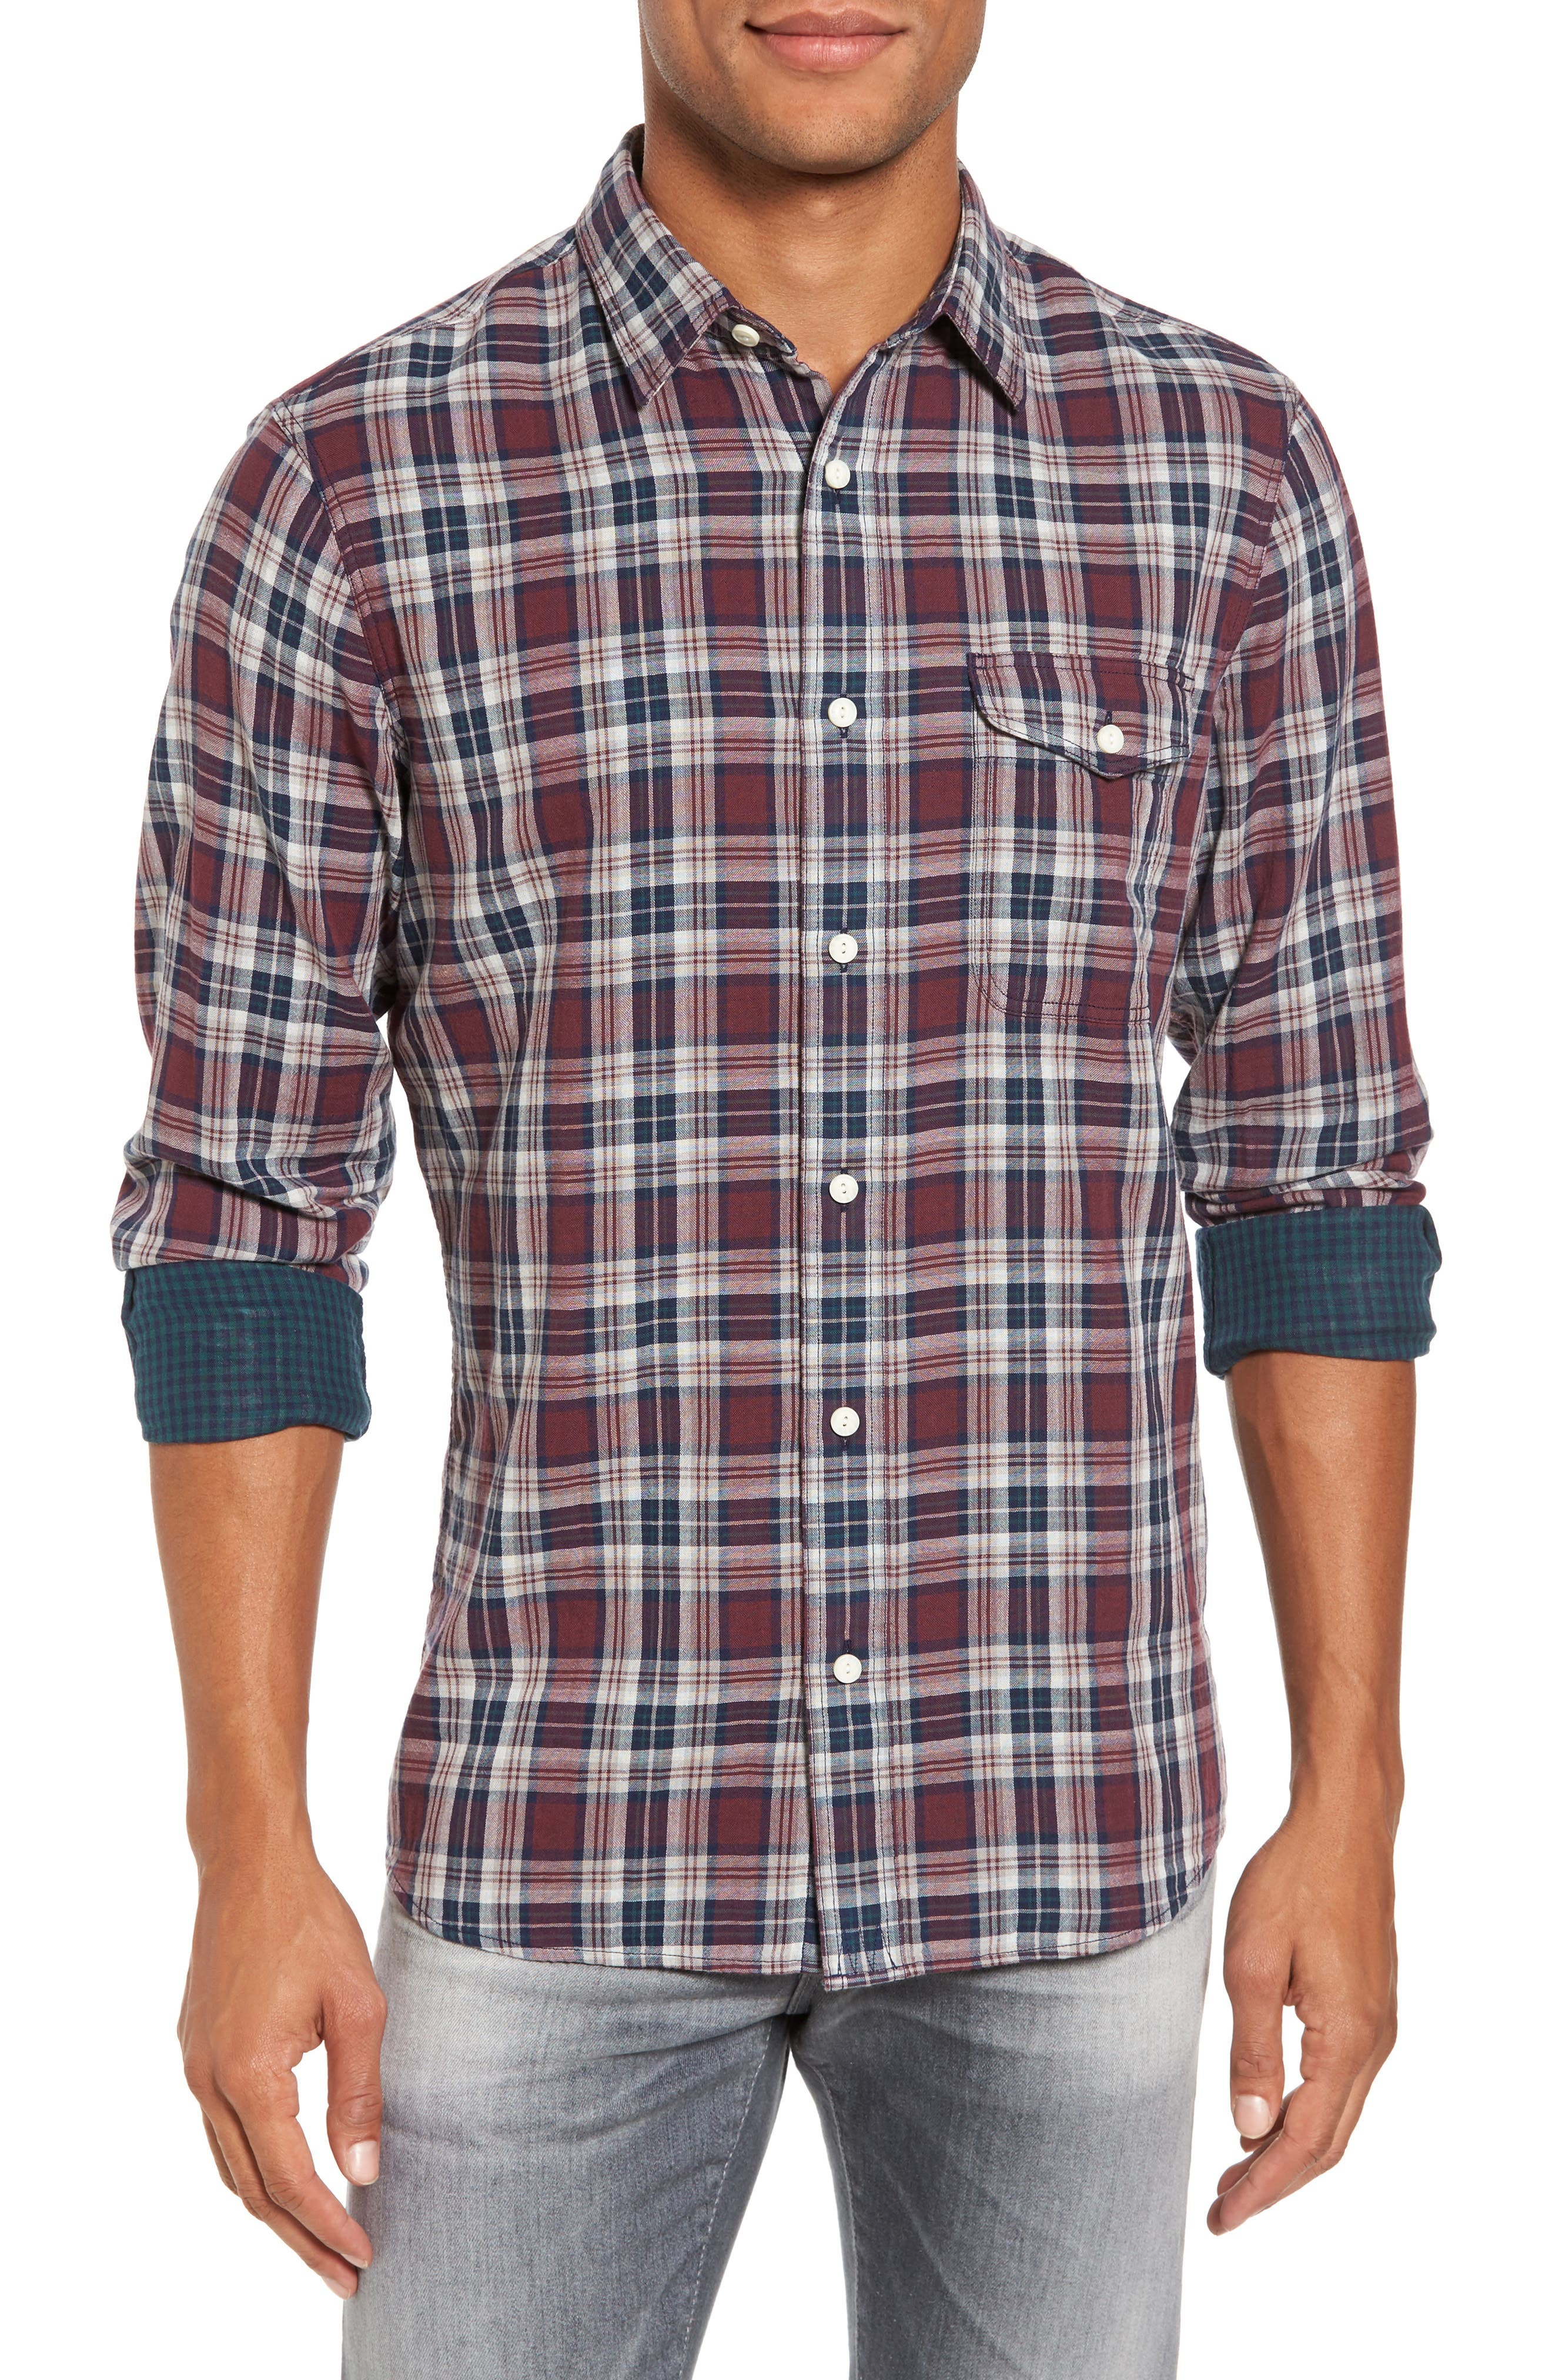 Alternate Image 1 Selected - Nordstrom Men's Shop Lumber Duofold Slim Fit Plaid Shirt